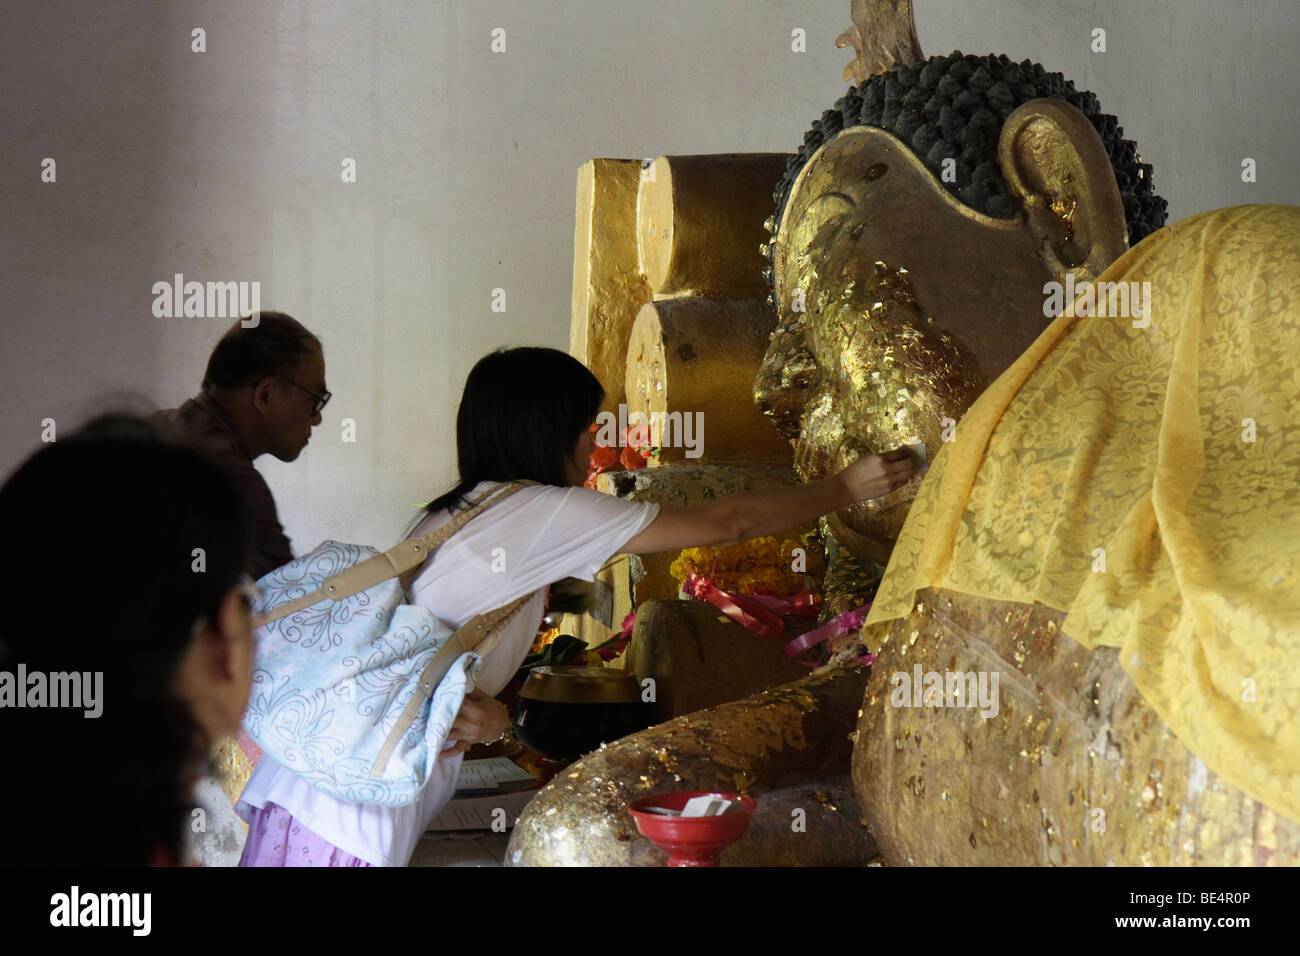 Buddhist sticking gold leaf on a recumbent statue of Buddha, Temple Wat Phra Sing, Chiang Mai, Northern Thailand, Stock Photo